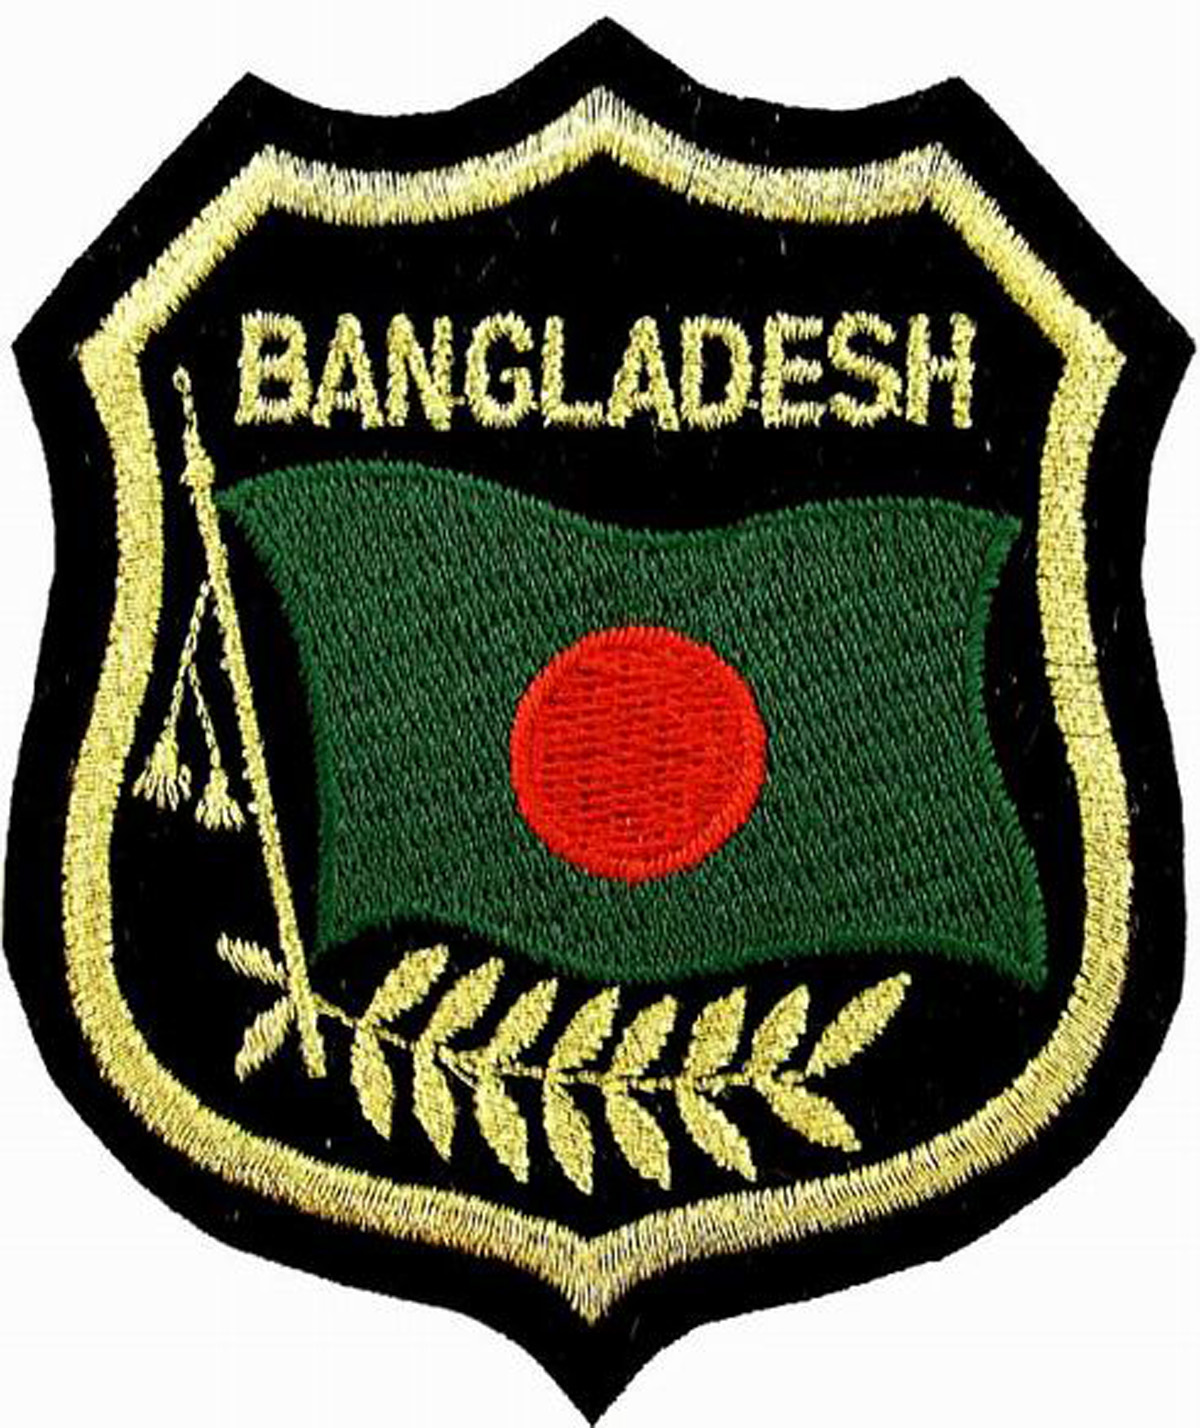 http://1.bp.blogspot.com/-x1SlTQnyE48/TeT_Cmvj2xI/AAAAAAAABIs/YPwLpvx_-to/s1600/graphics+wallpapers+Flag+of+Bangladesh+%25286%2529.jpg